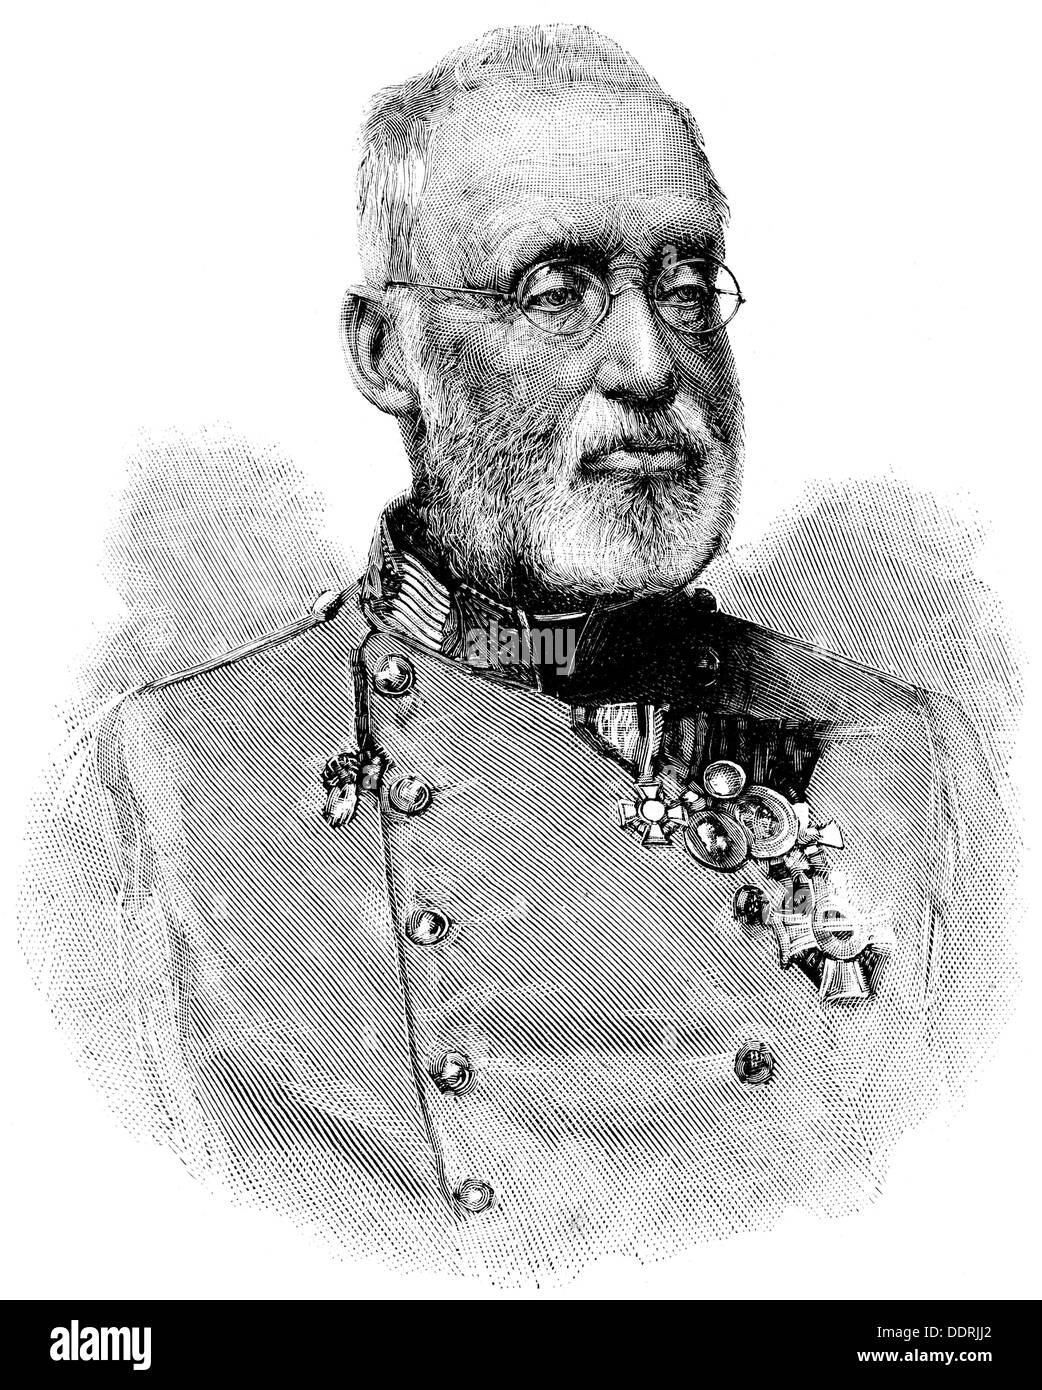 Albrecht, 3.8.1817 - 18.2.1895, Archduke of Austria, Austrian general, inspector general of the Austro-Hungarian Army 1868 - 1895, portrait, wood engraving, circa 1890, Additional-Rights-Clearances-NA - Stock Image